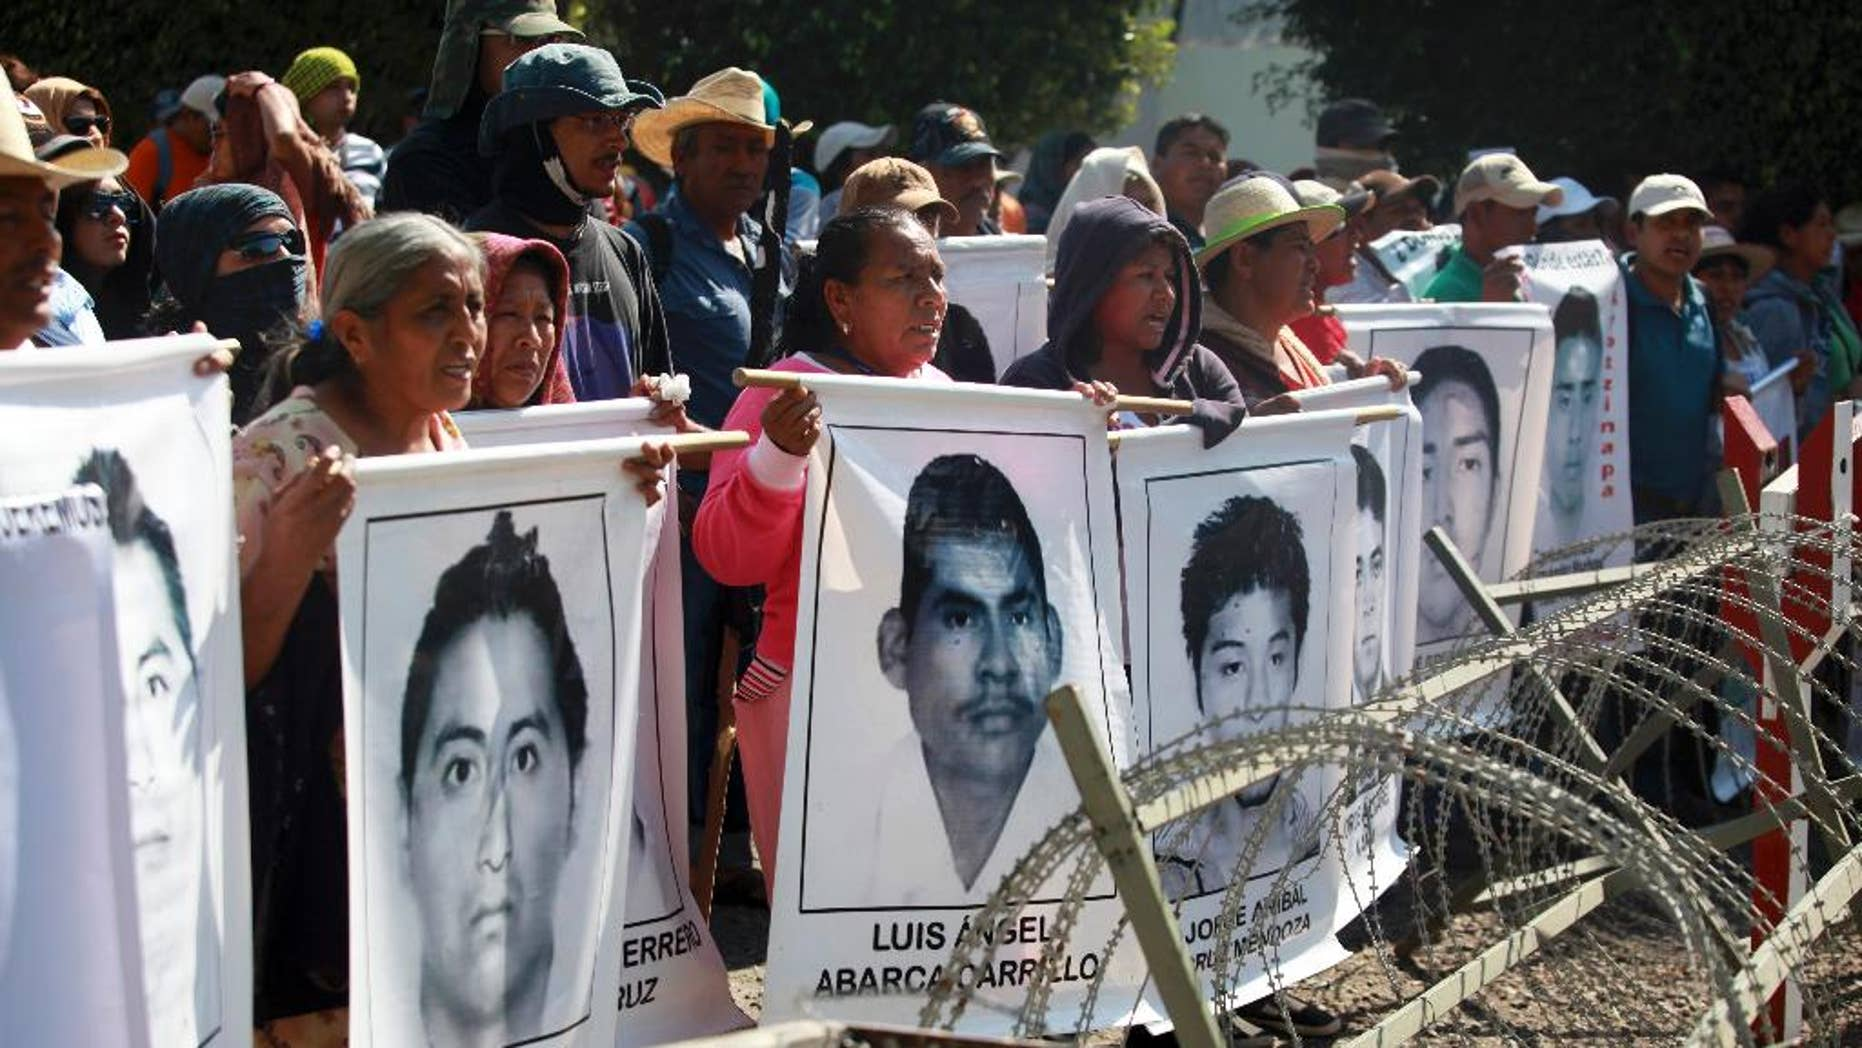 FILE - In this Dec. 18, 2014 file photo, relatives of missing students protest in front of the entrance to the 27th Infantry Battalion base in Iguala, Mexico. Mexican authorities announced Tuesday, Jan. 13, 2015, that the parents of the 43 missing students can enter army bases to search for their sons, but say there is no evidence the army was involved in their disappearance. (AP Photo/Felix Marquez, File)